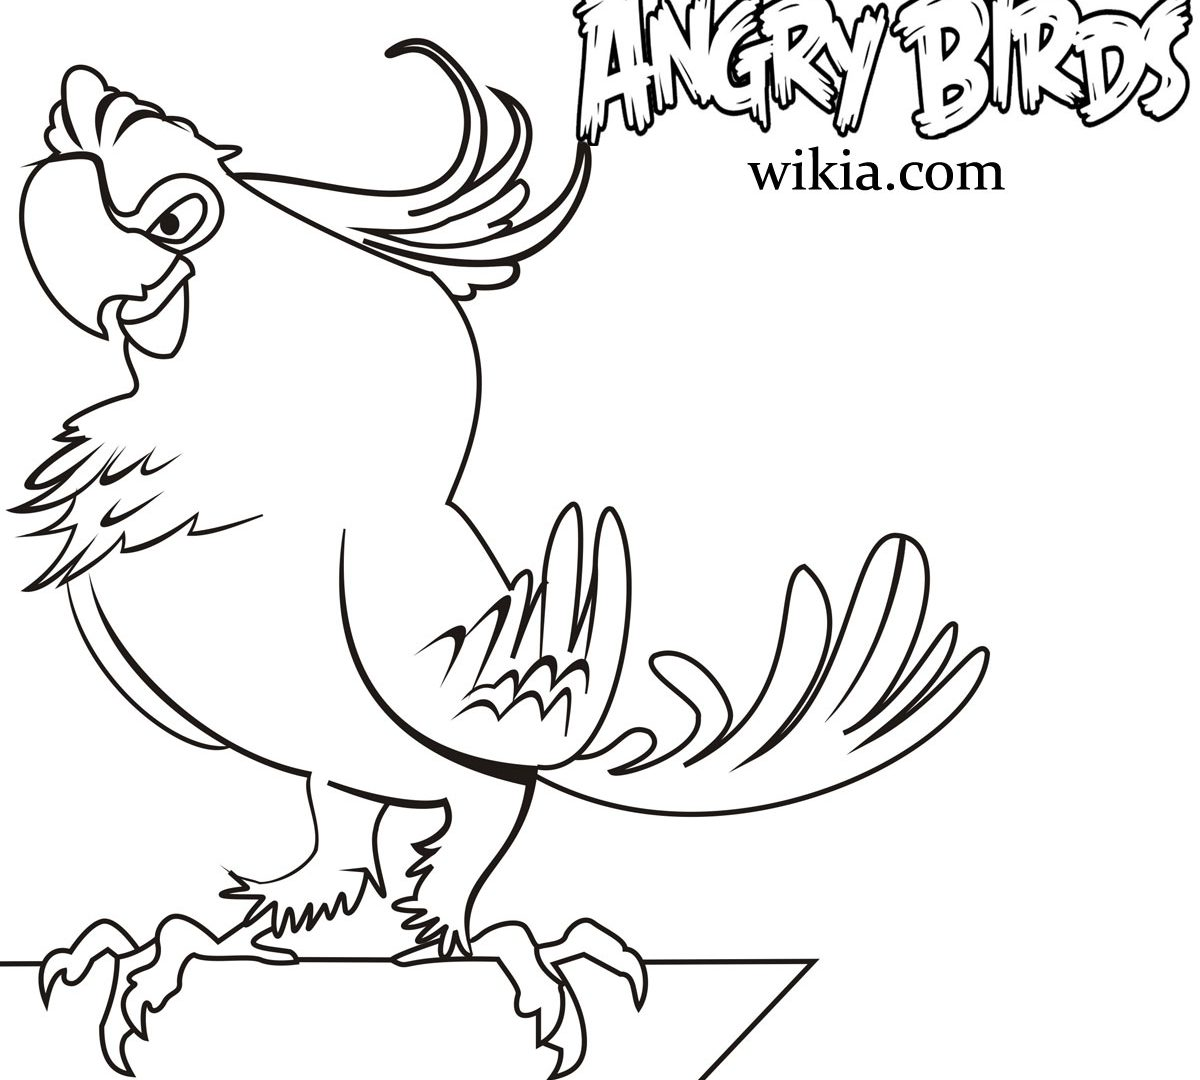 1200x1080 Images Of Angry Birds Epic Coloring Pages To For Kids Pigs High